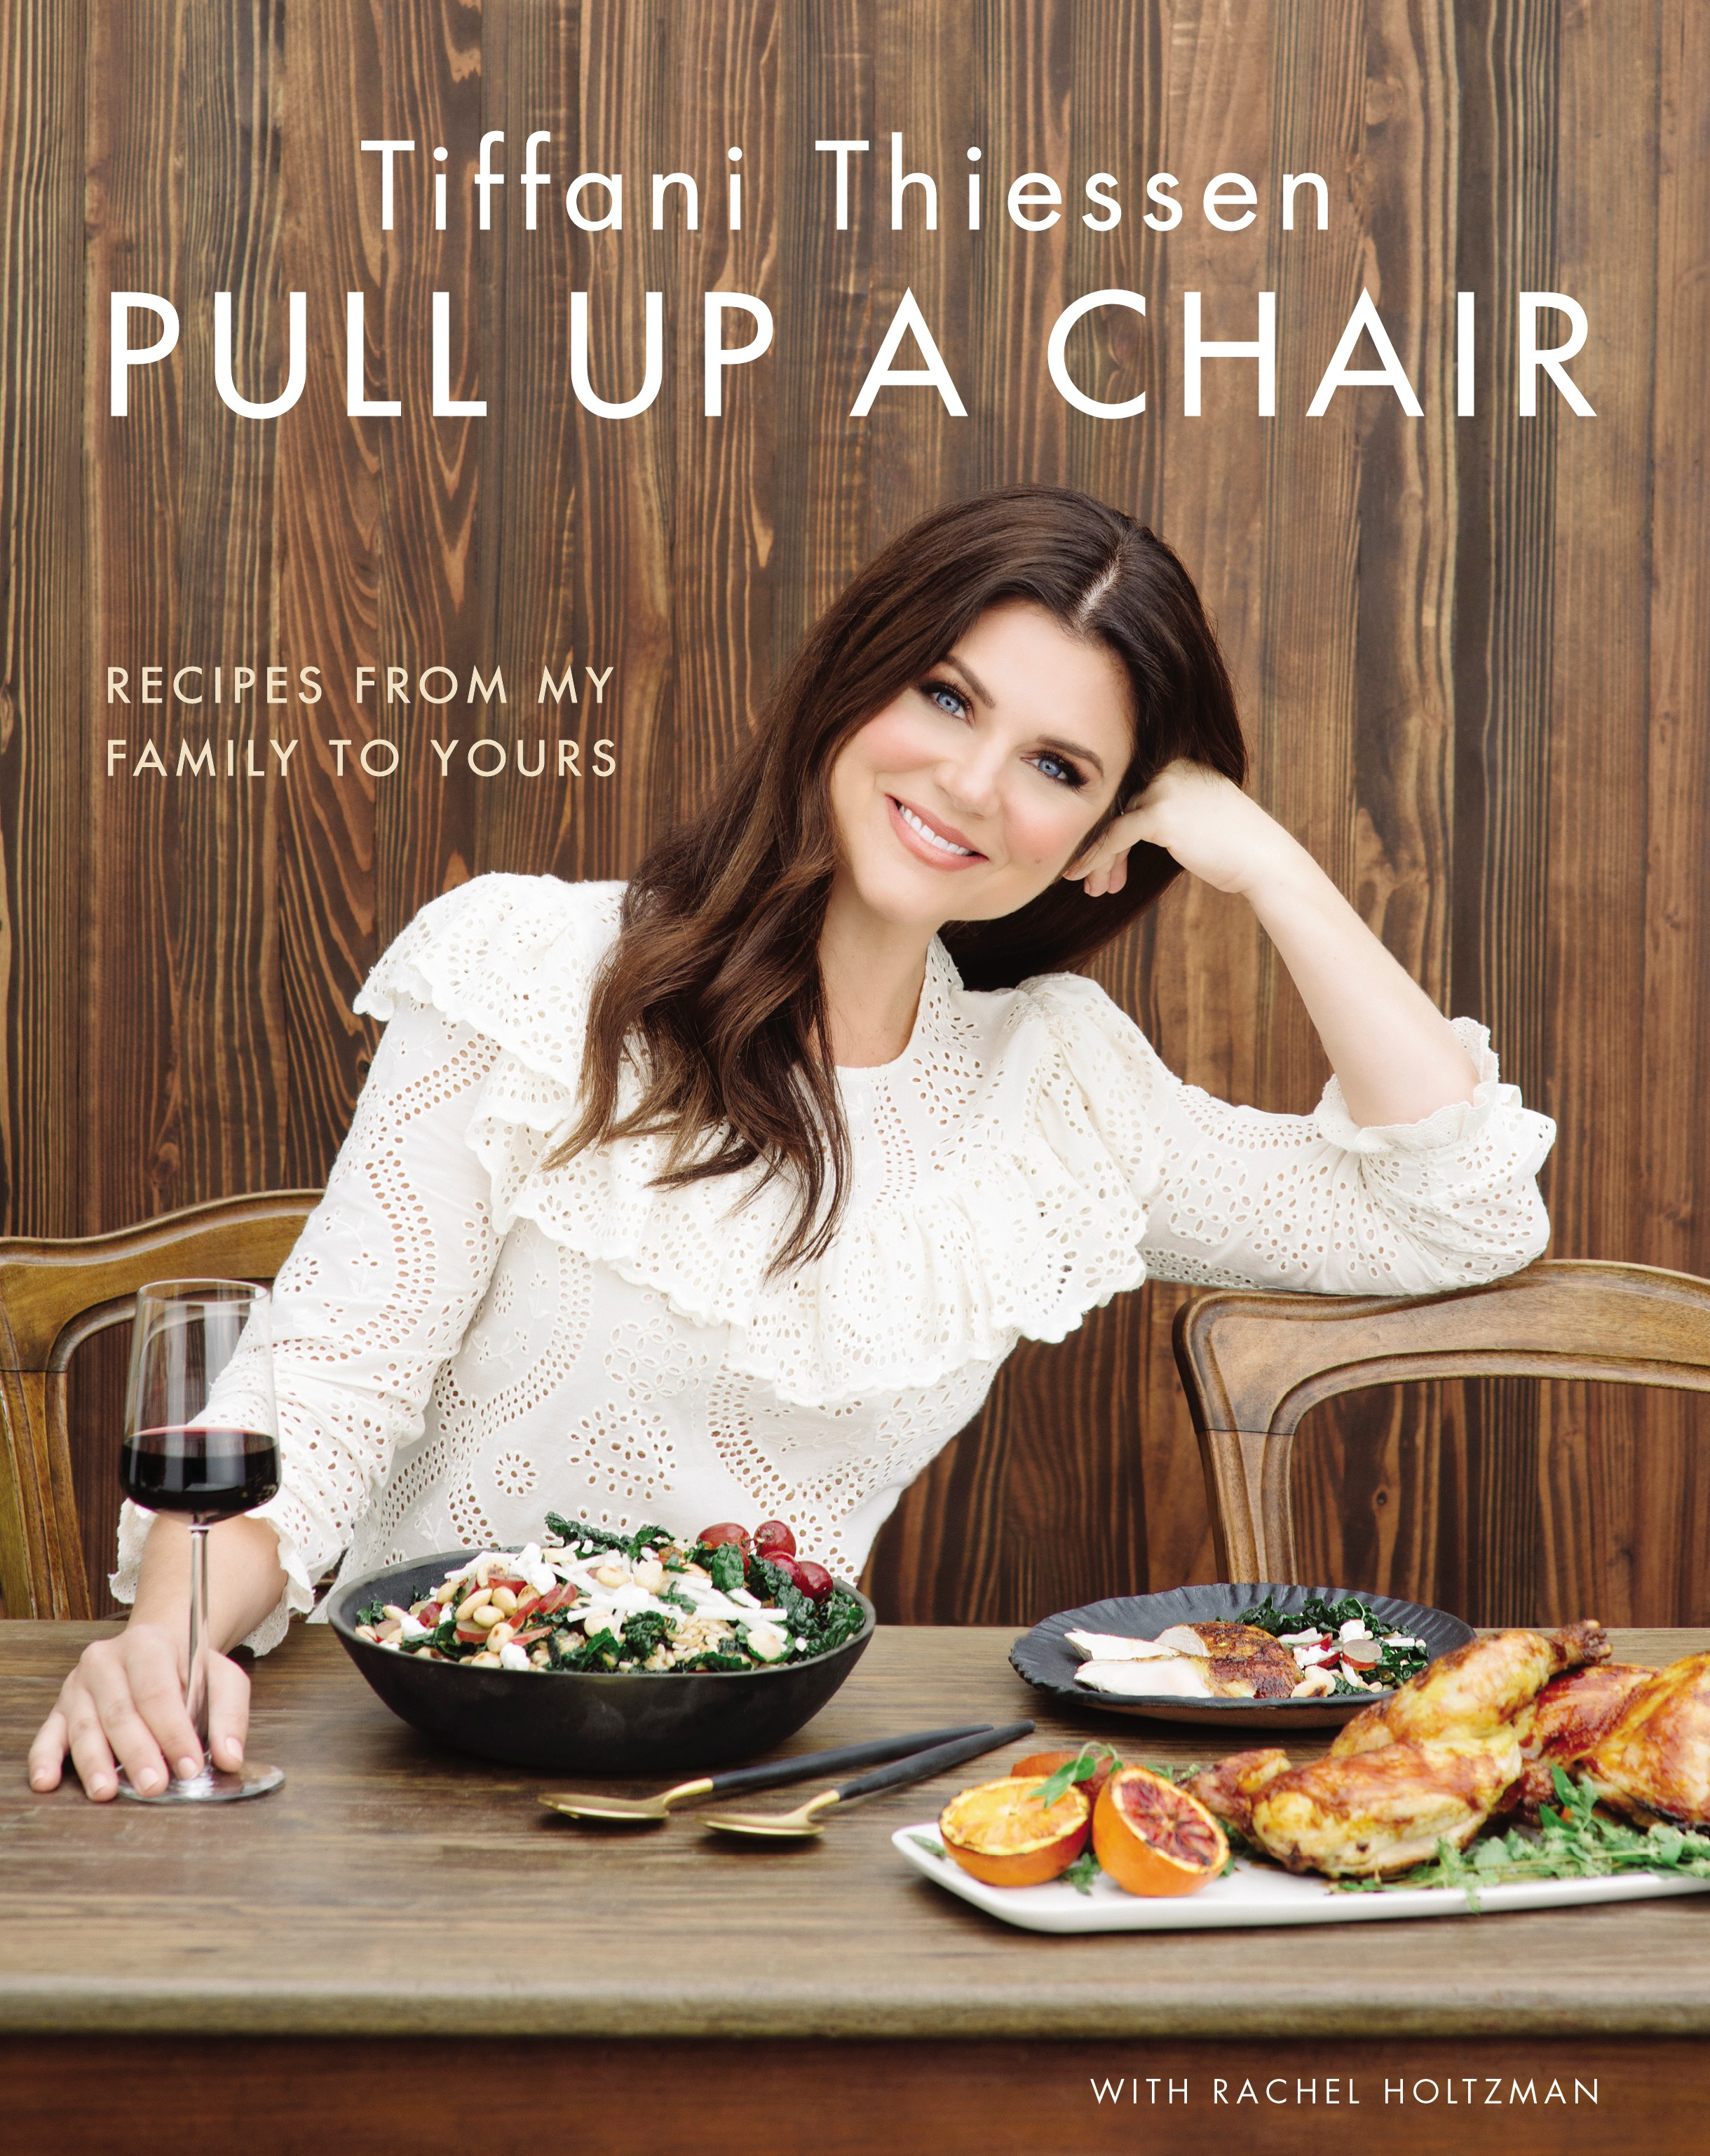 Tiffani Thiessen Pull Up a Chair